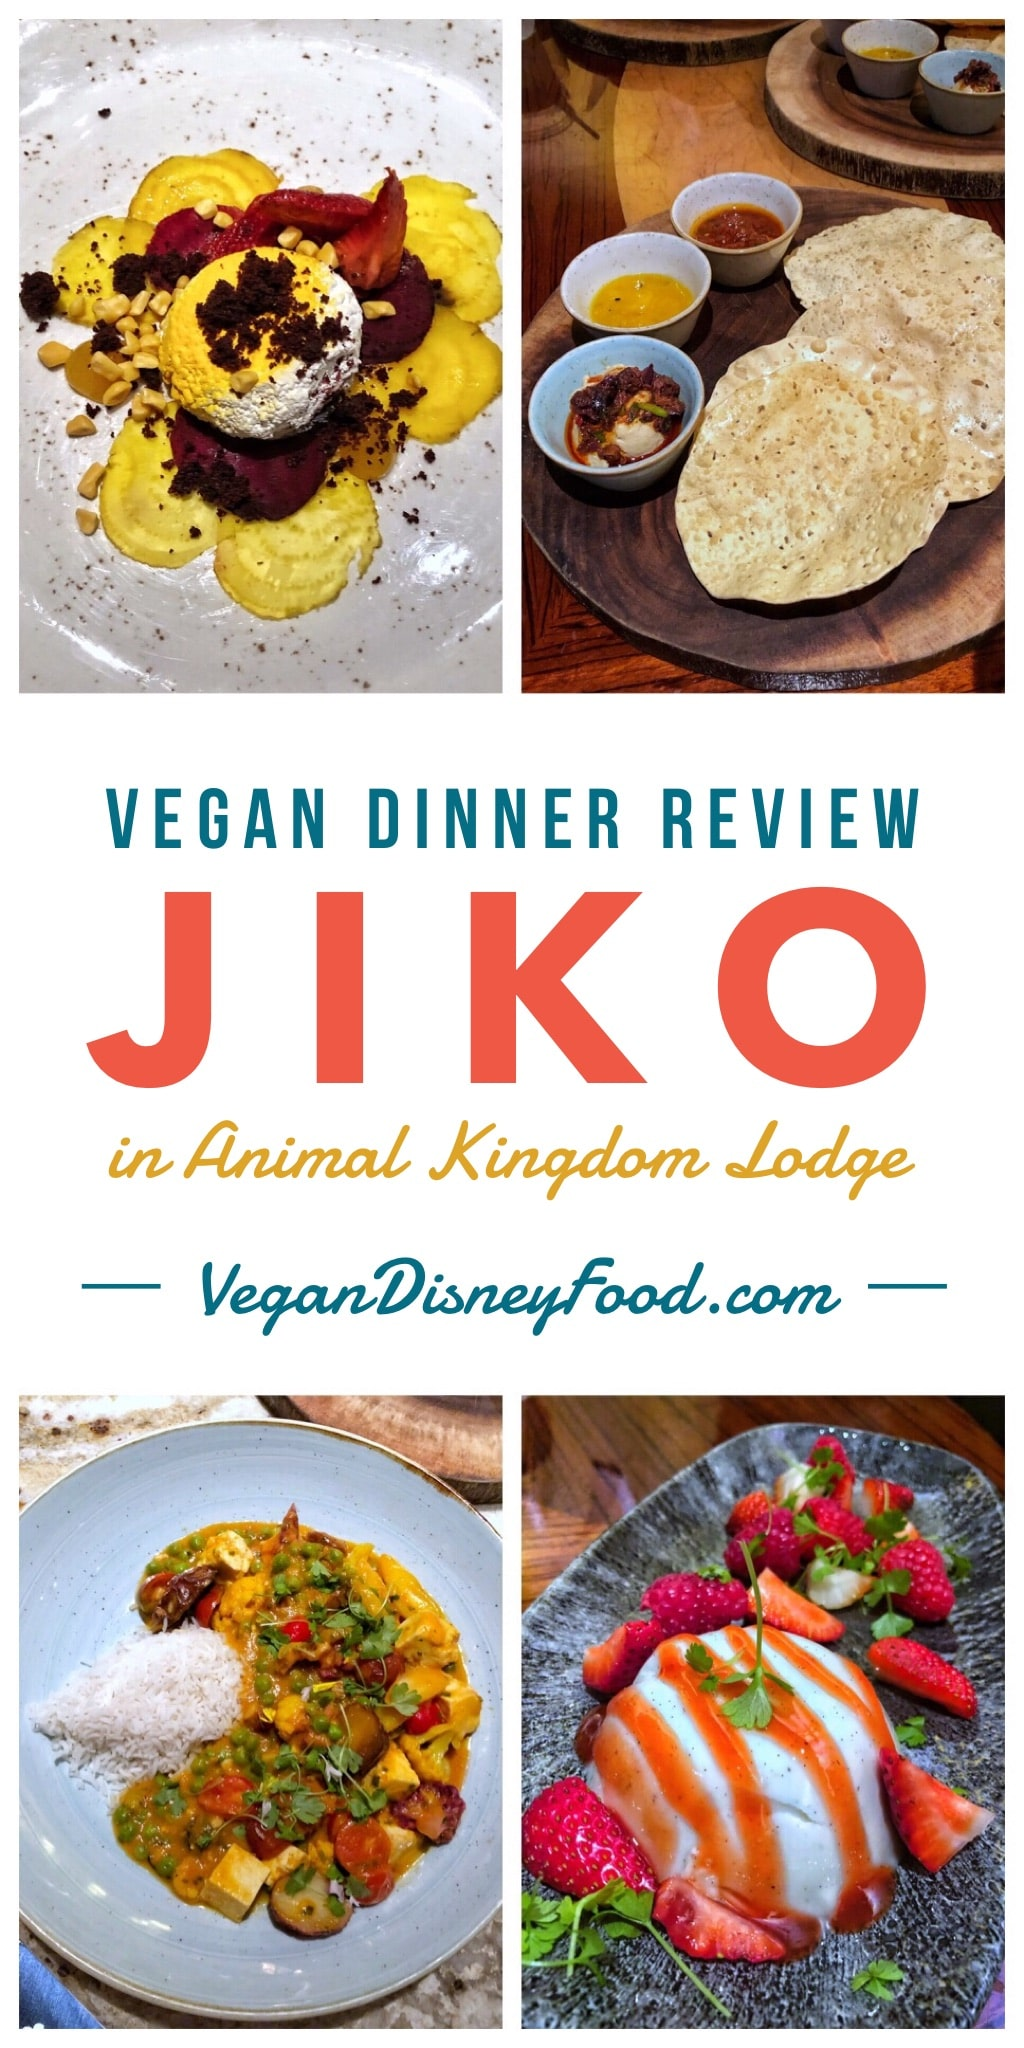 Vegan Dinner Review of Jiko at Animal Kingdom Lodge in Walt Disney World